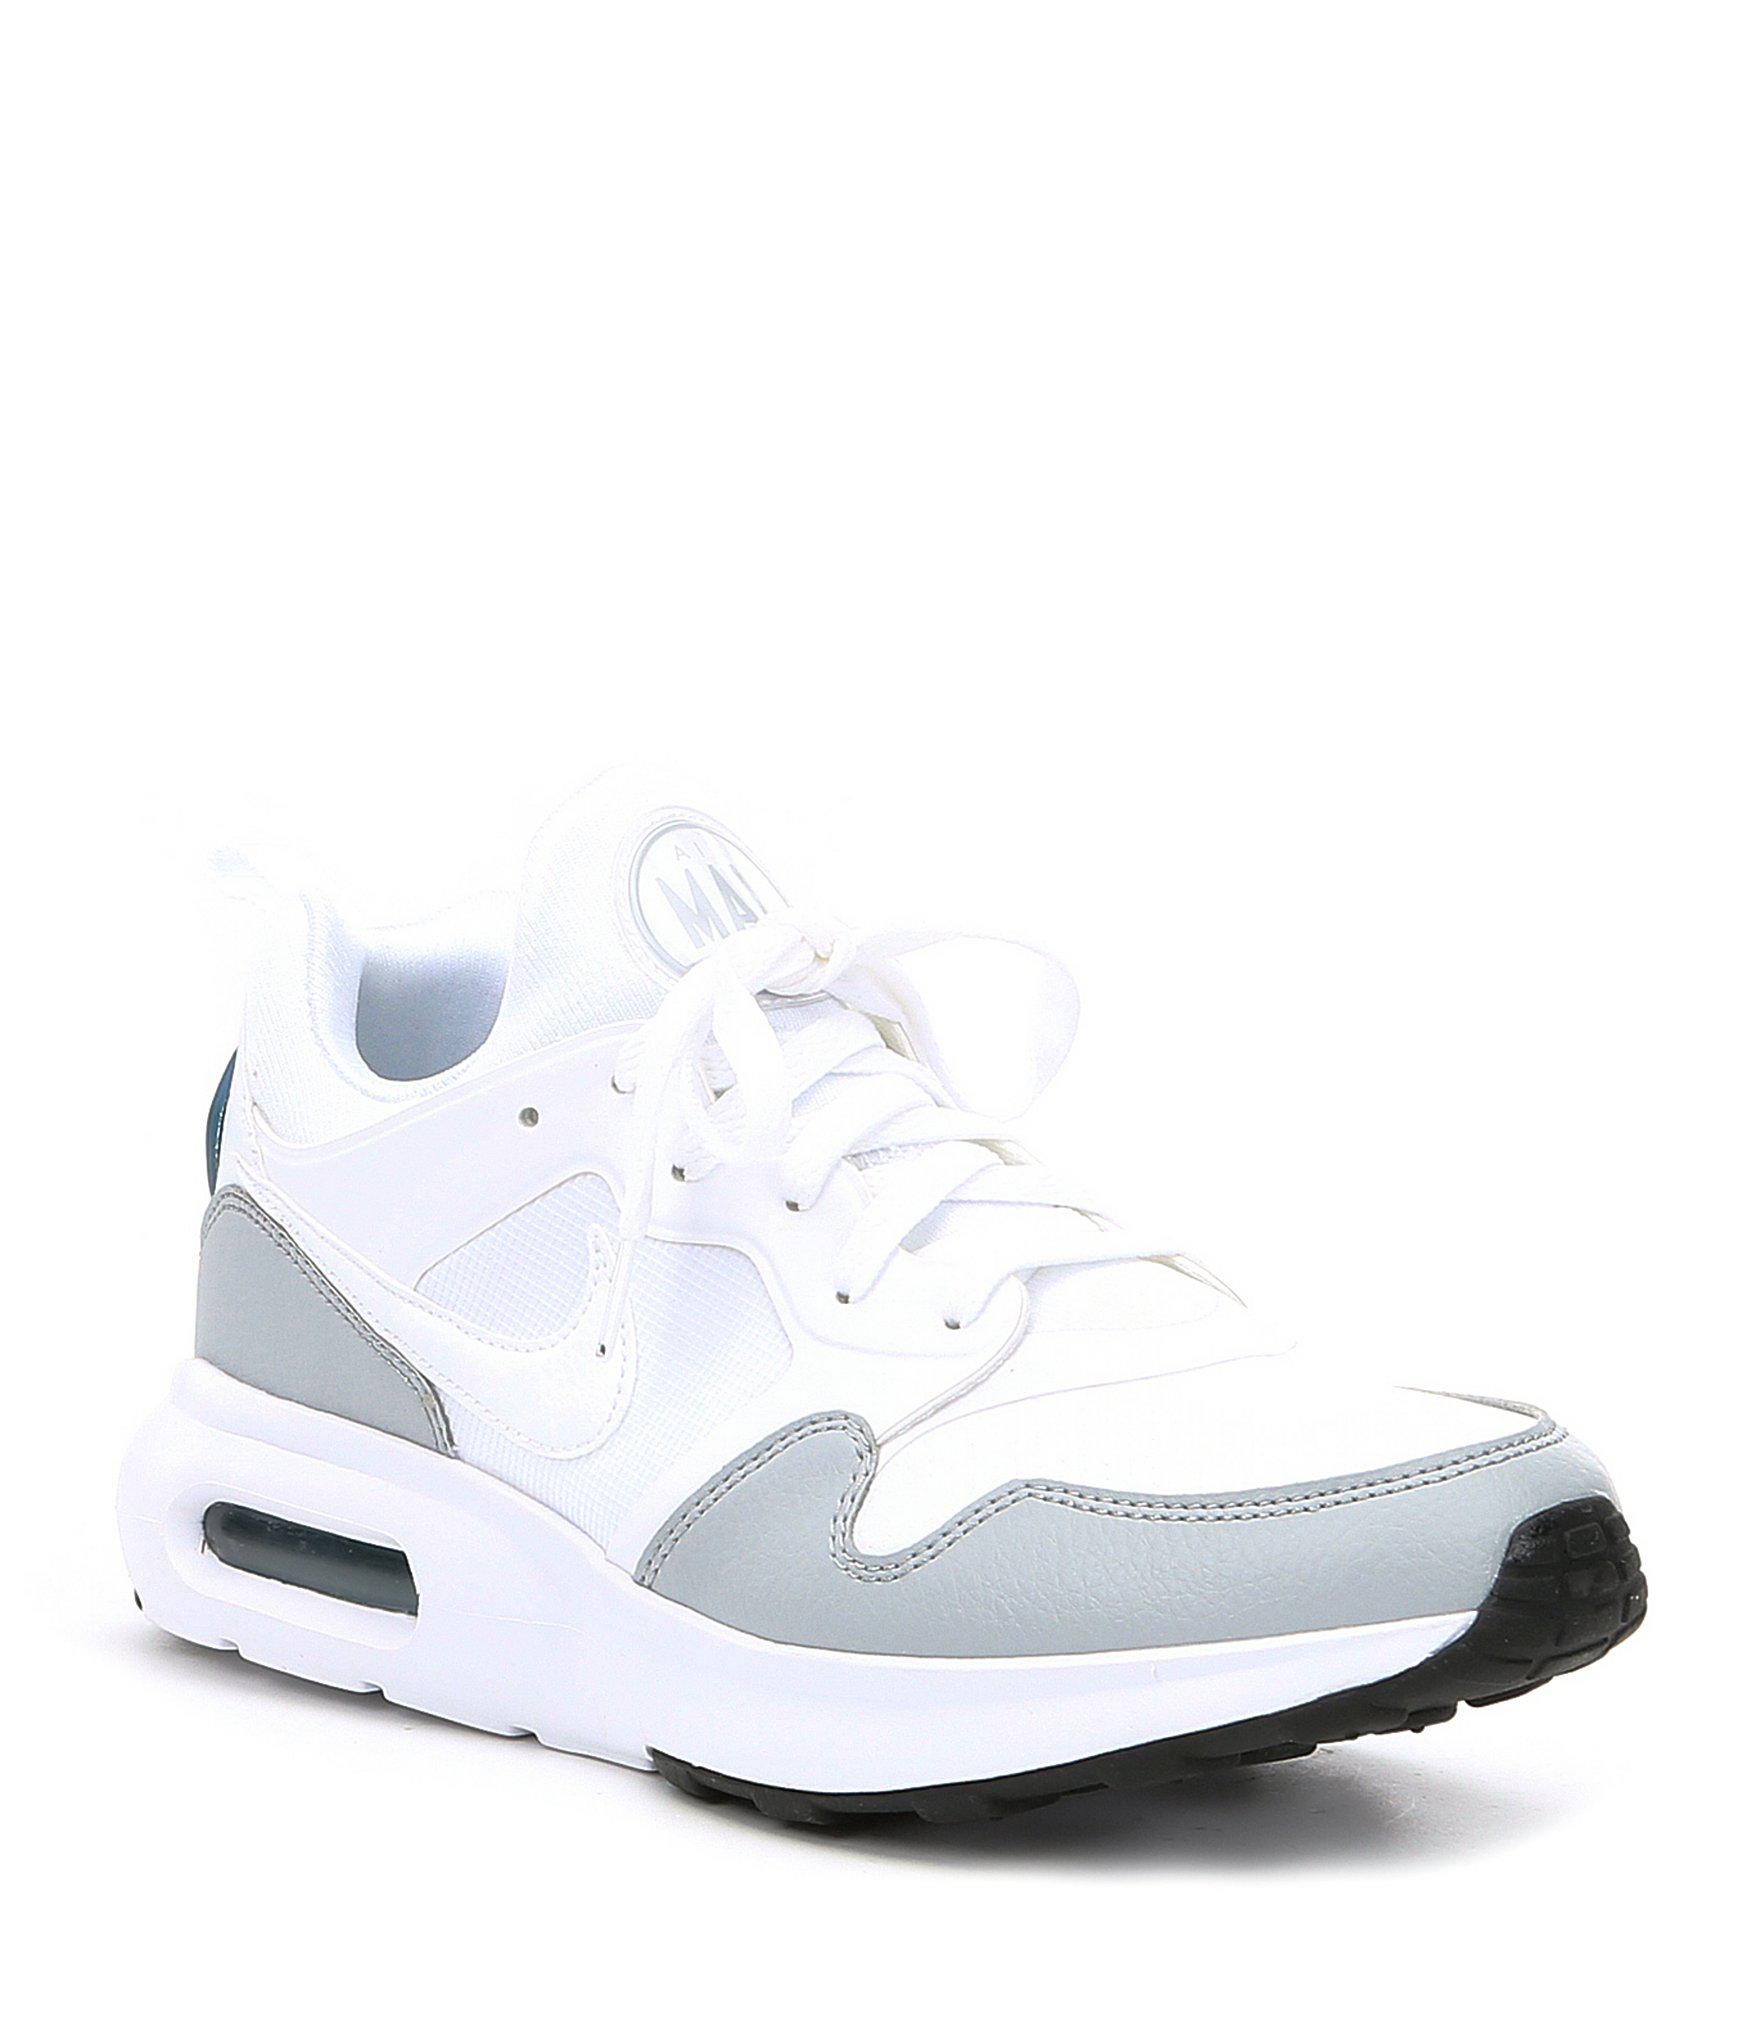 new concept d10a7 6fcc3 Lyst - Nike Men s Air Max Prime Sl Lifestyle Sneakers in White for Men